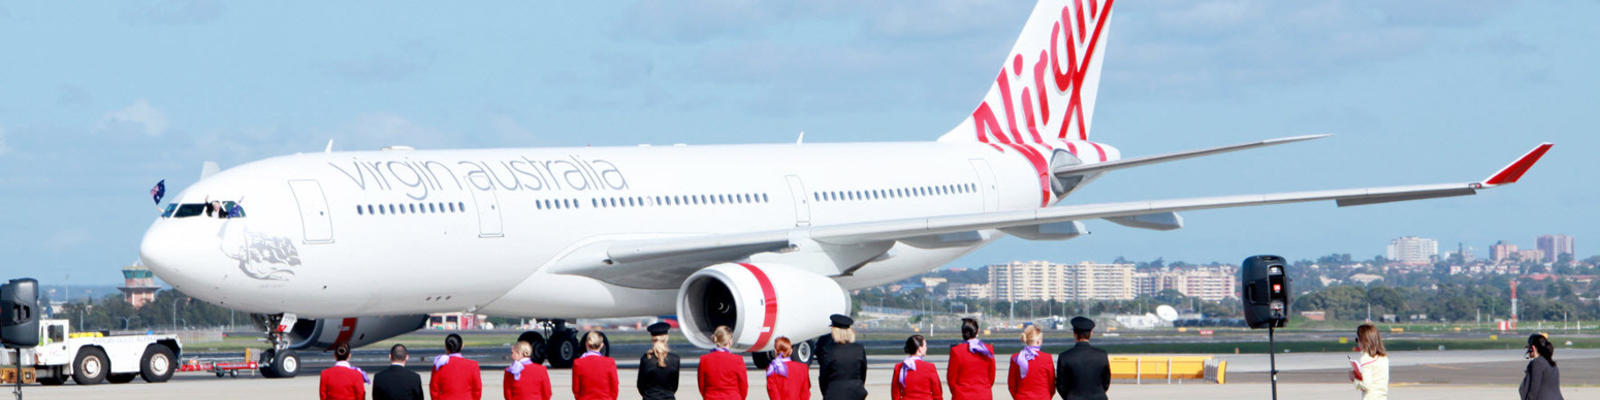 Flight crew standing on a red carpet on the runway looking at a Virgin Australia airplane